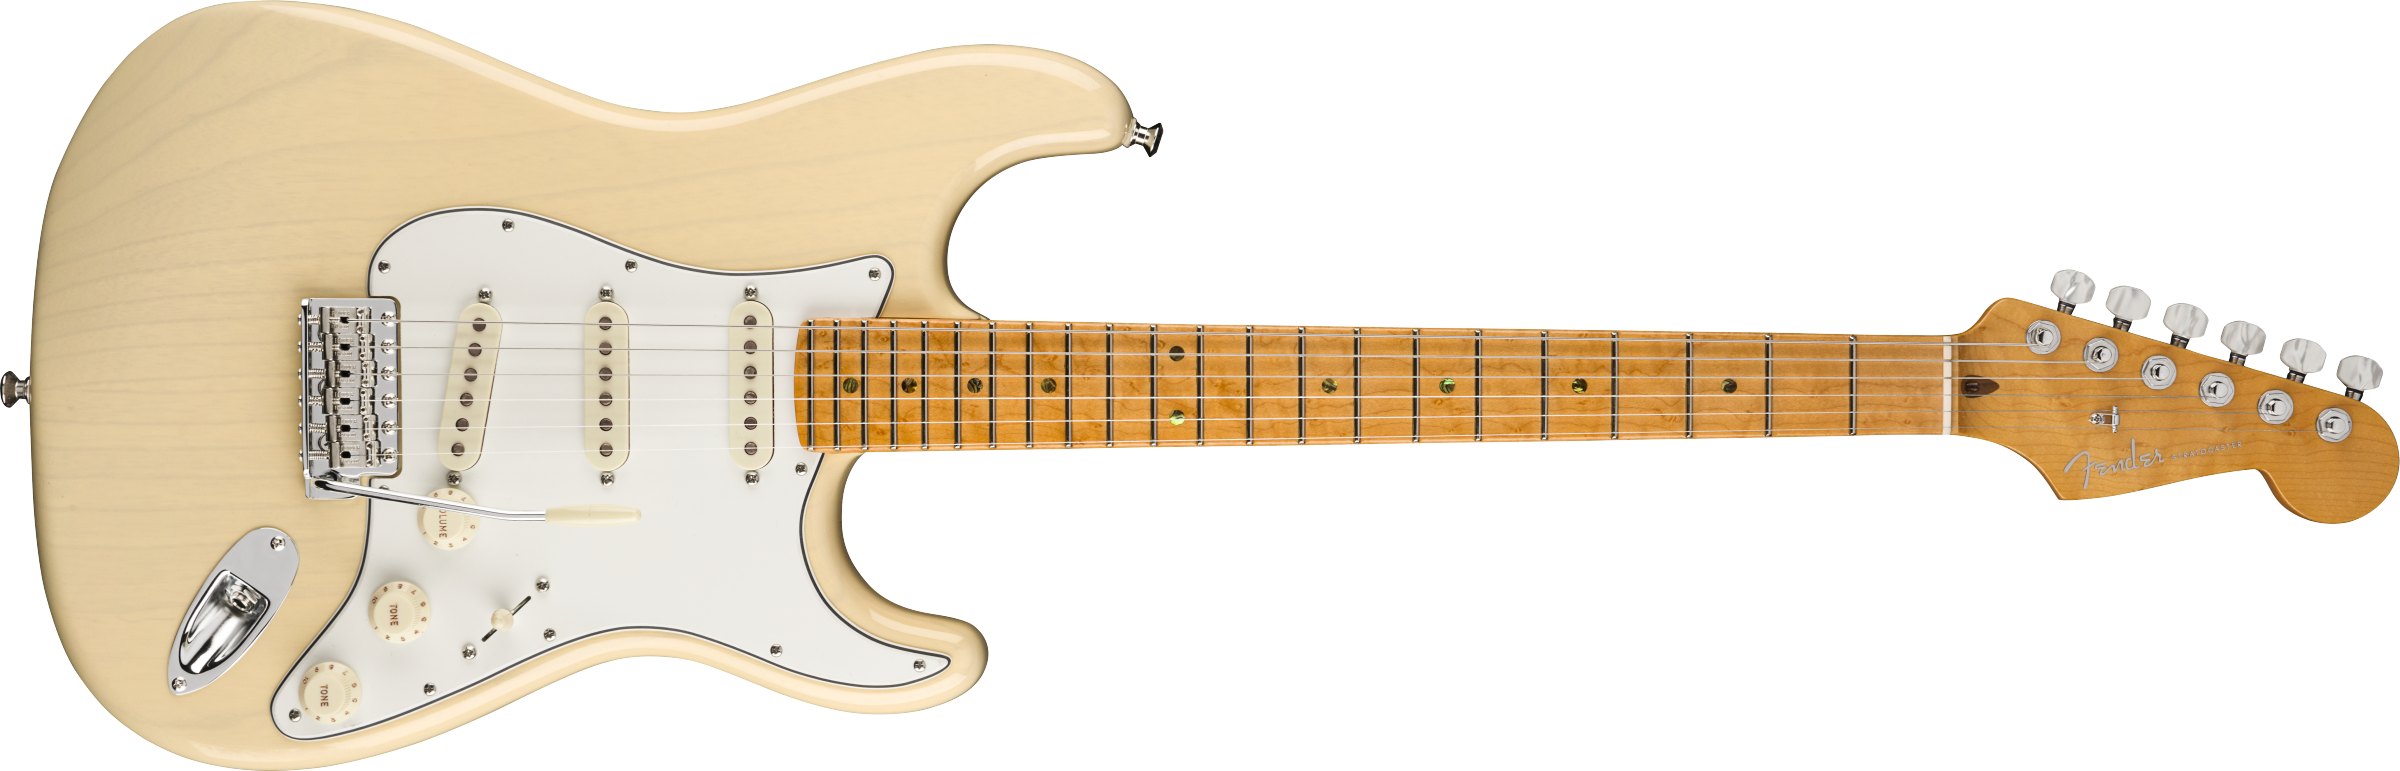 FENDER-American-Custom-Stratocaster-Maple-Fingerboard-Vintage-Blonde-NOS-sku-571005114